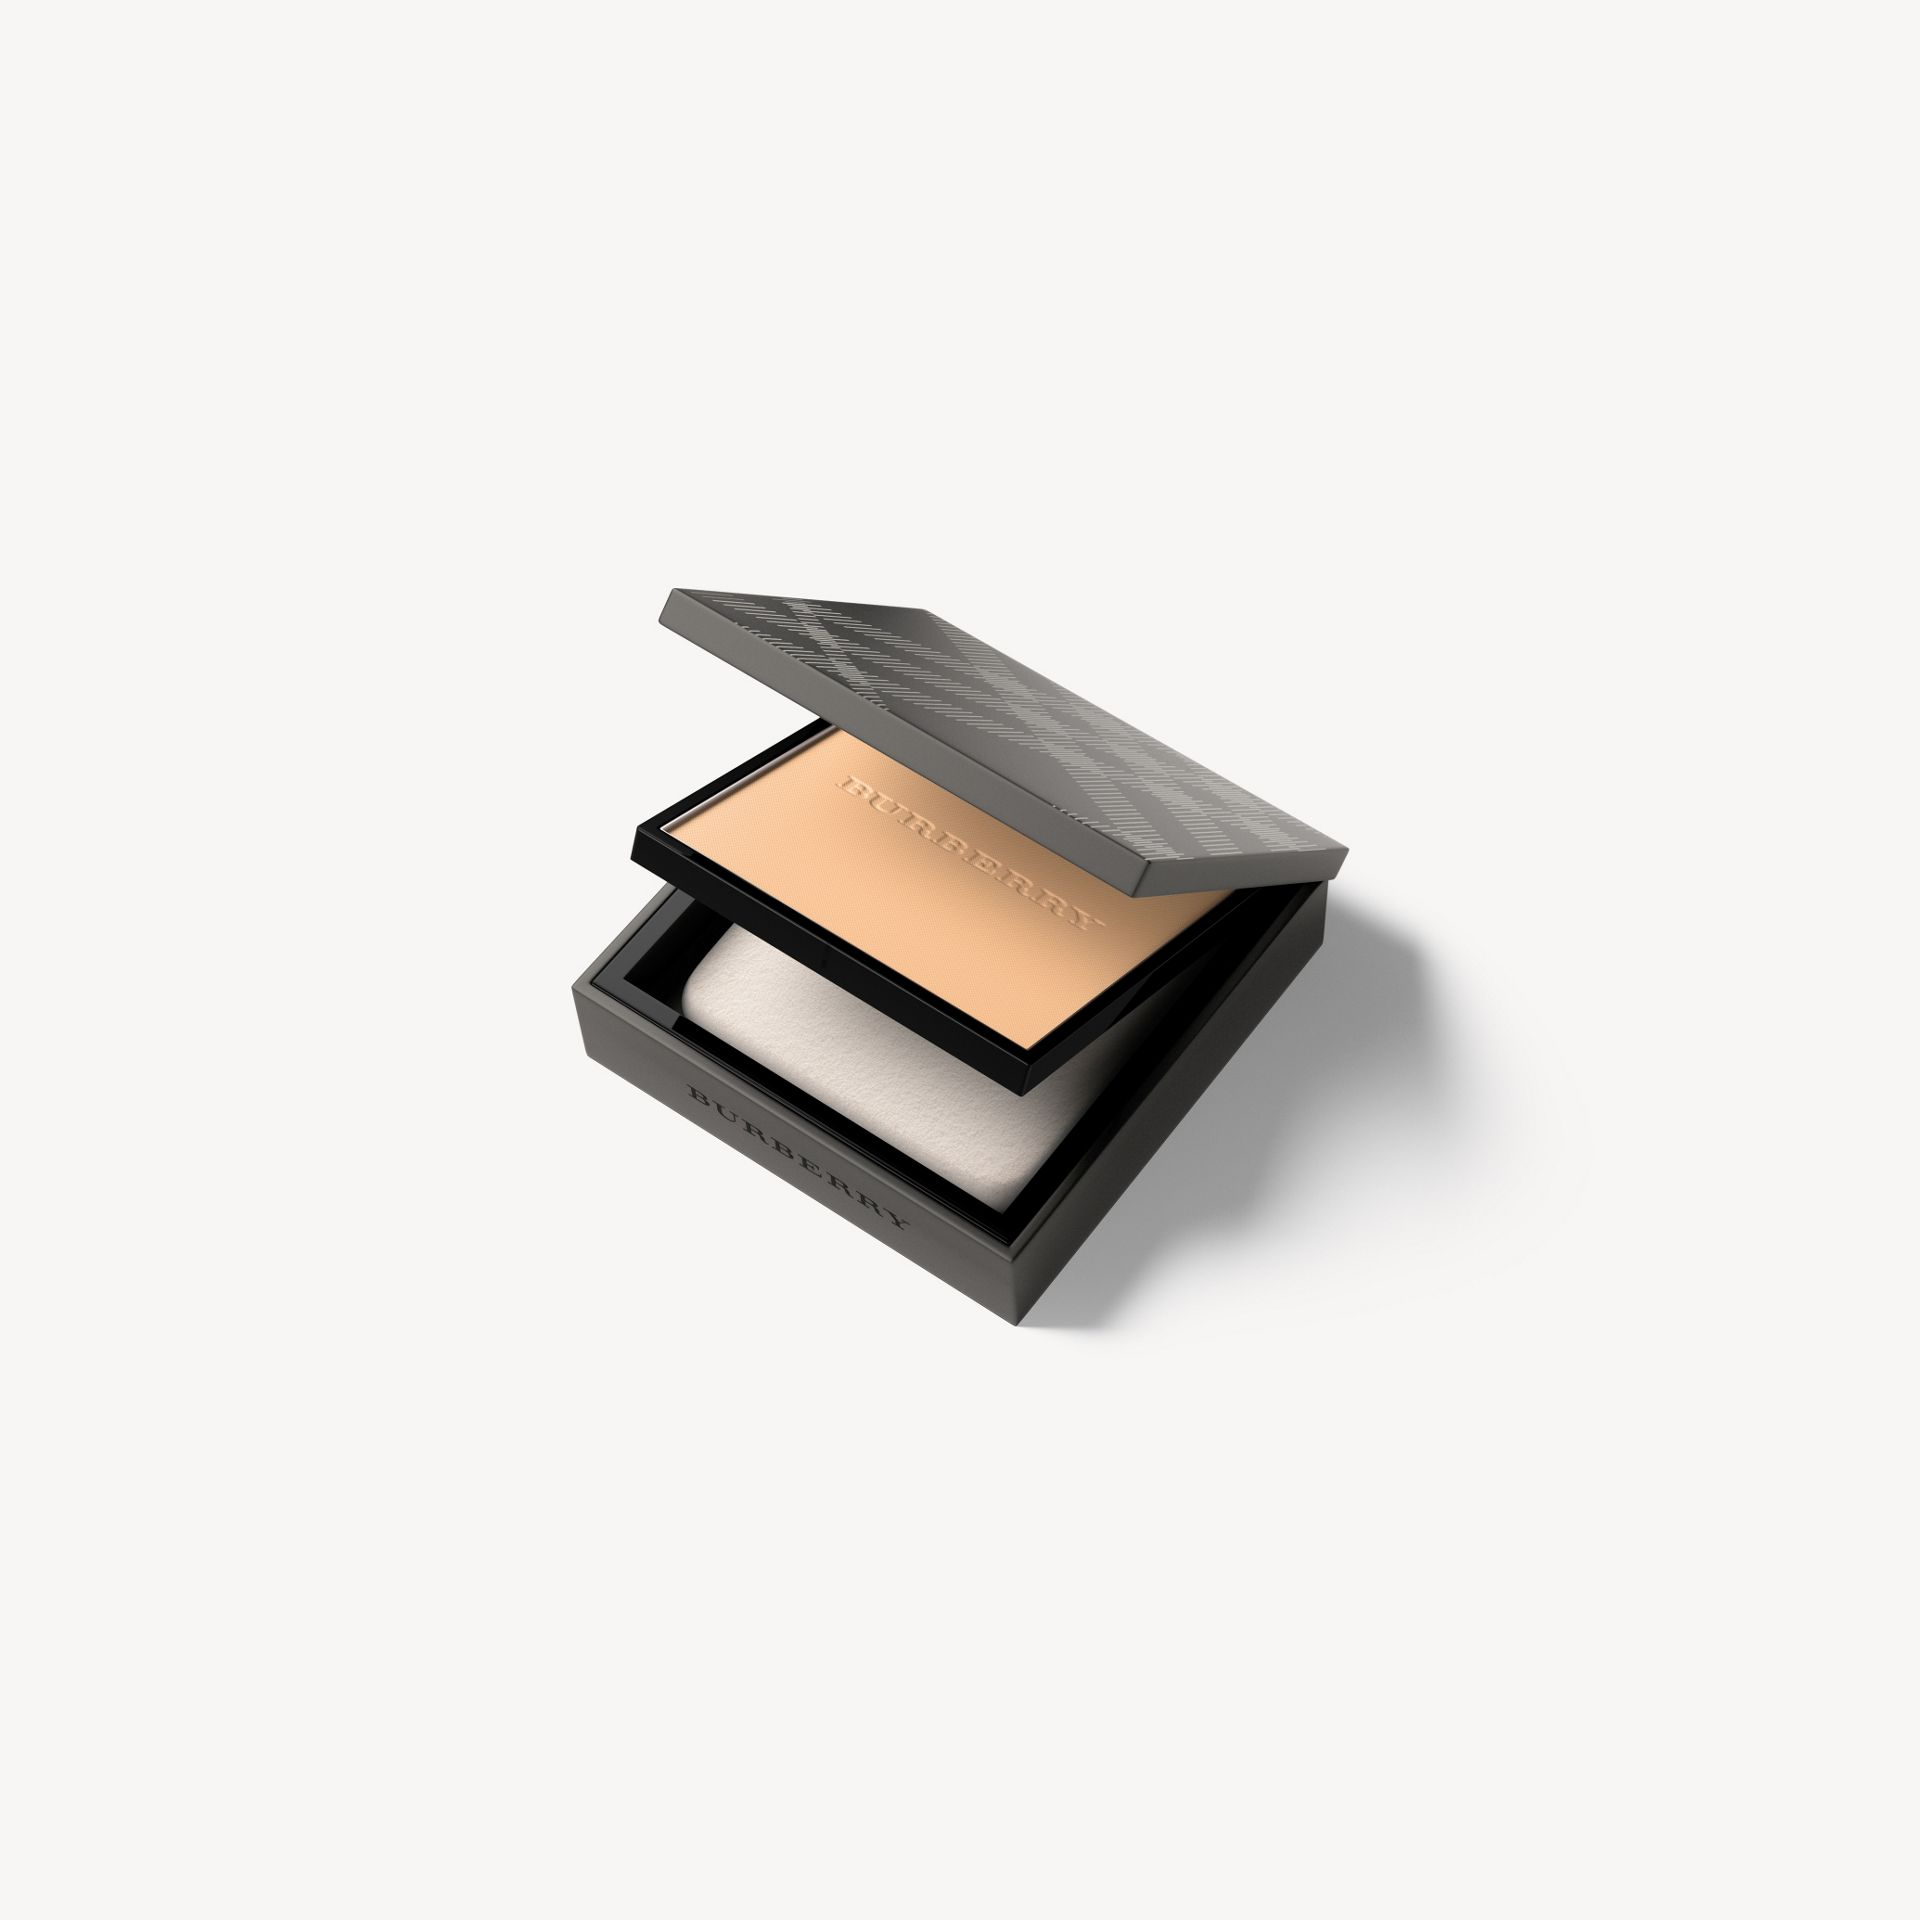 Light honey 10 Burberry Cashmere Compact – Light Honey No.10 - imagen de la galería 1